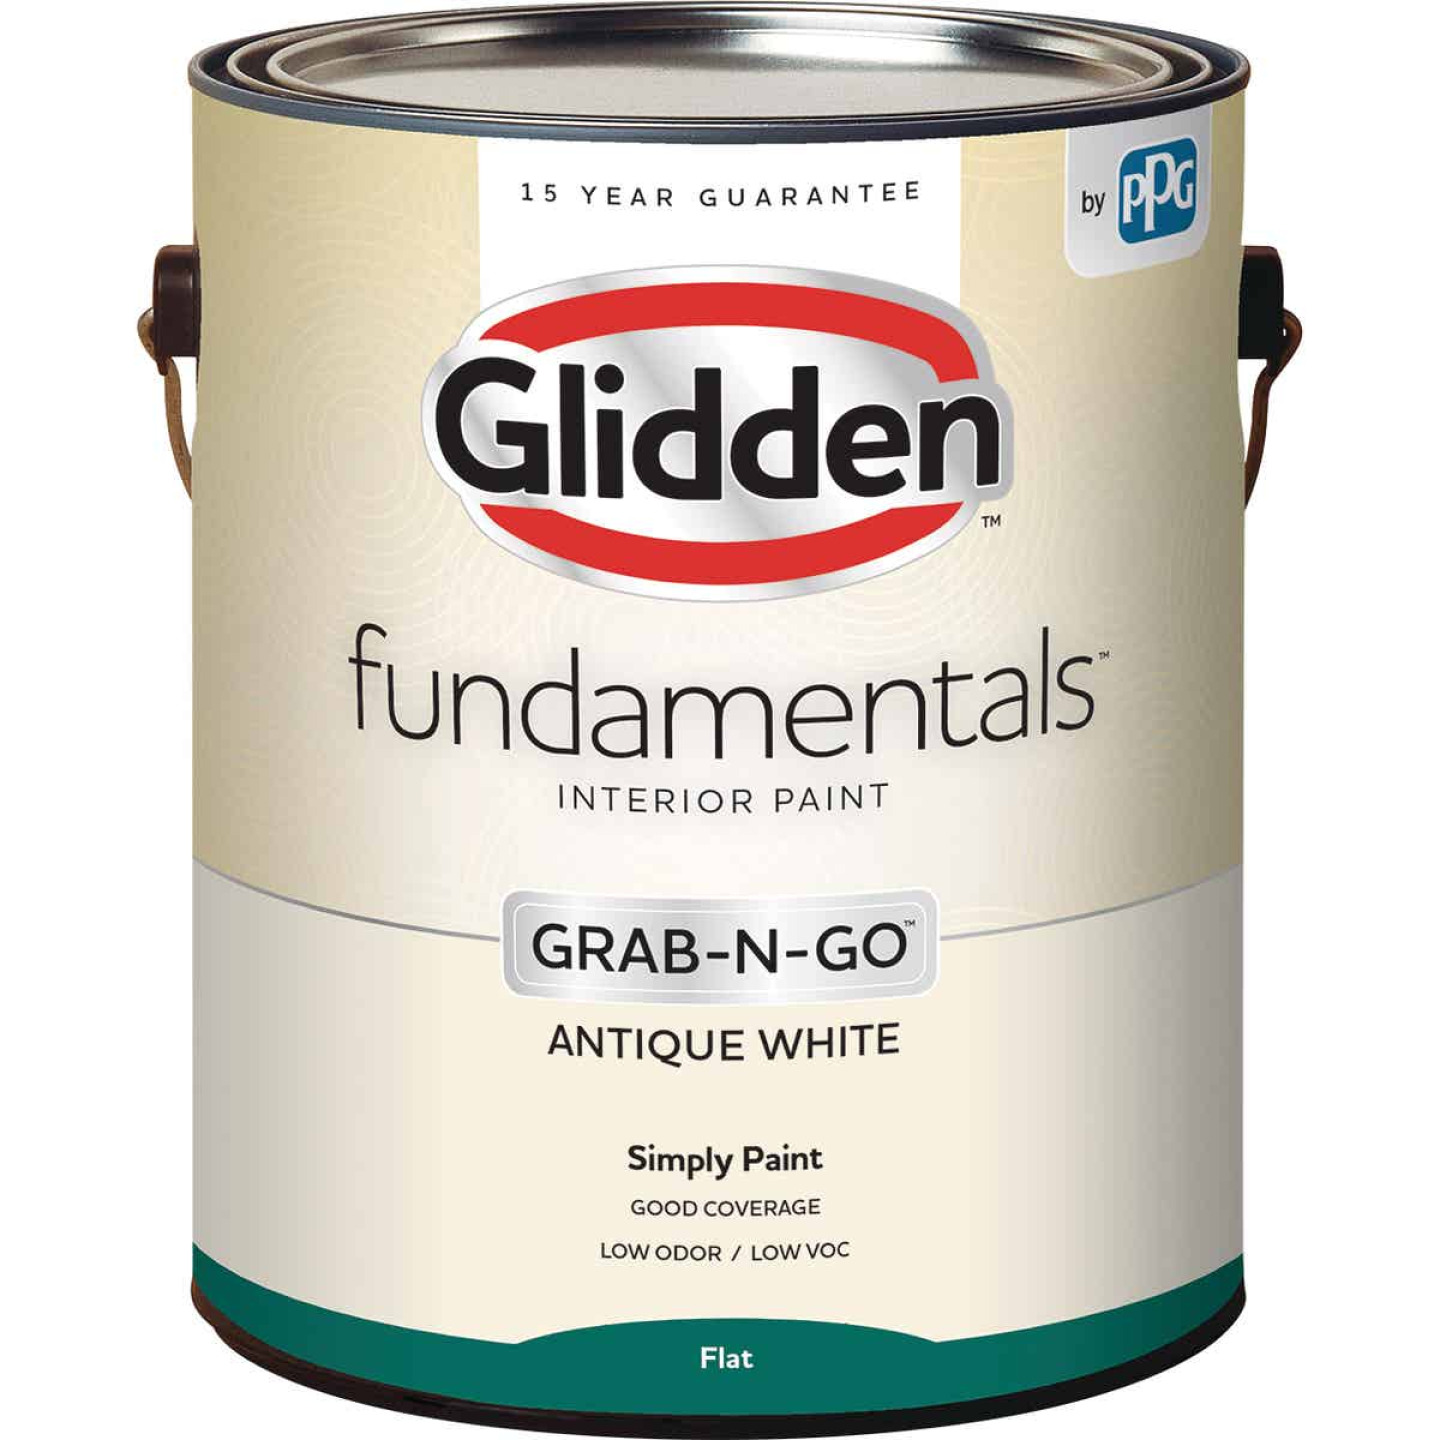 Glidden Fundamentals Grab-N-Go Antique White Flat 1 Gallon Image 1